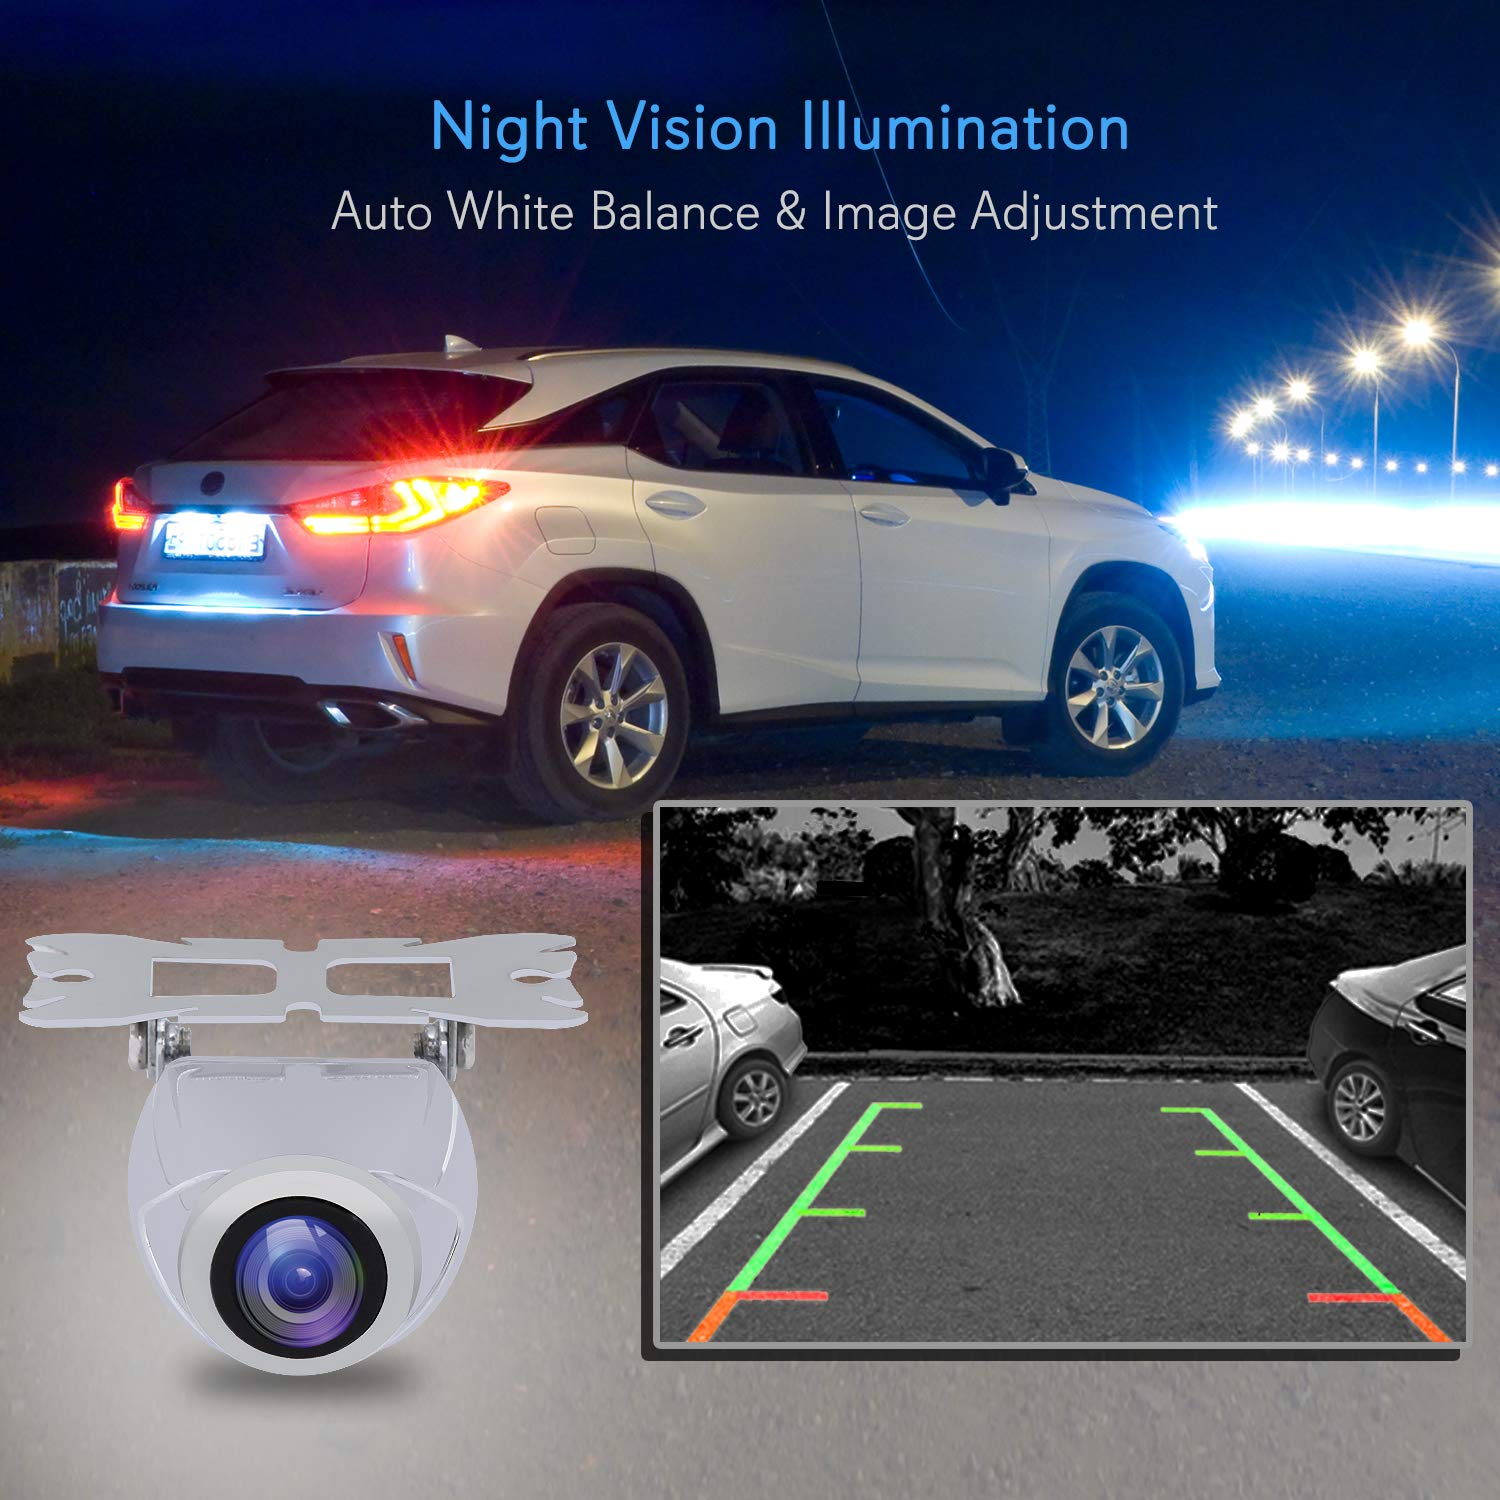 Pyle Car Rearview Backup Camera Compact Night Vision Plcm18bc Wiring Diagram Illumination Stainless Steel Waterproof Tilt Adjustable Cam Lens Angle